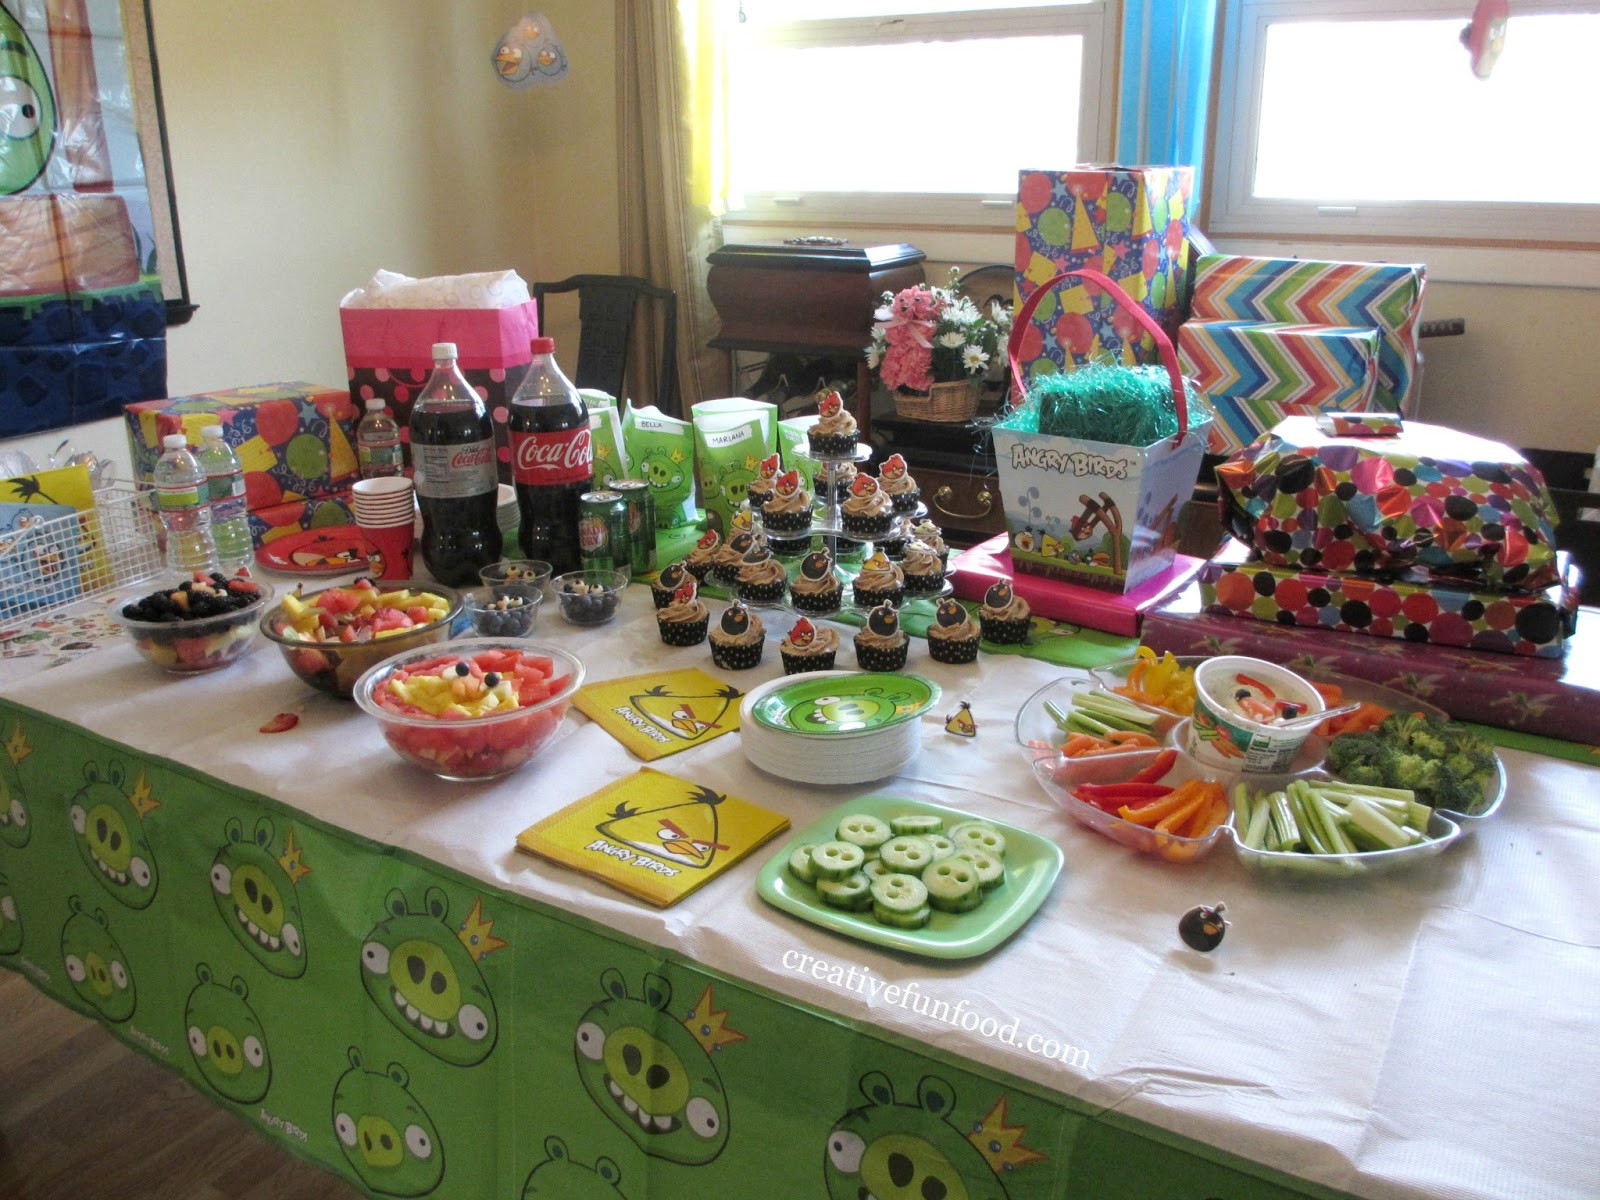 Food Ideas For A 2 Year Old Birthday Party  Creative Food Angry Birds Birthday Party Ideas